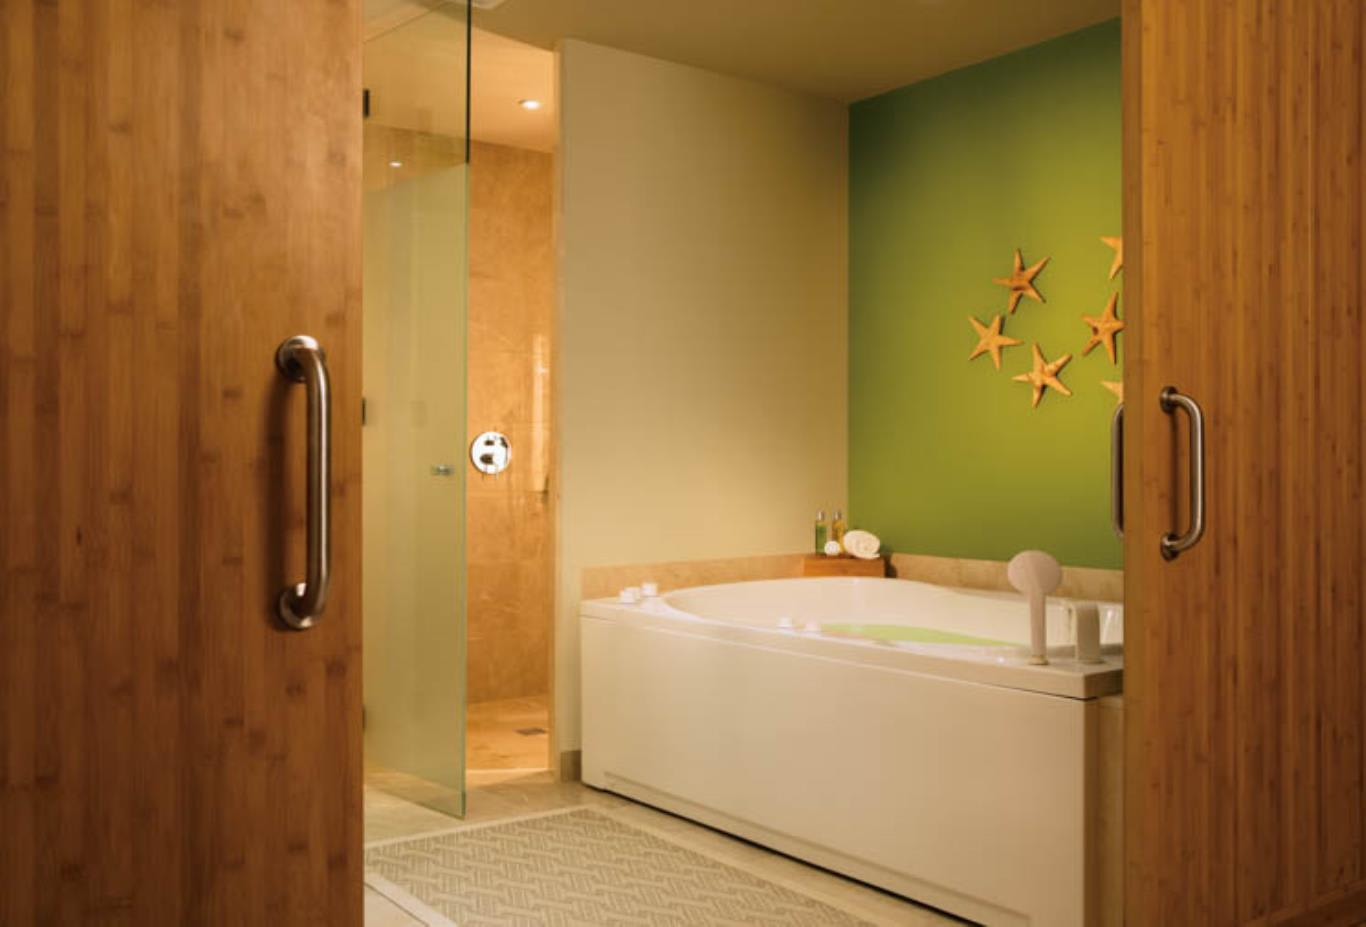 Preferred Club Master Suite indoor whirlpool bathtub and shower